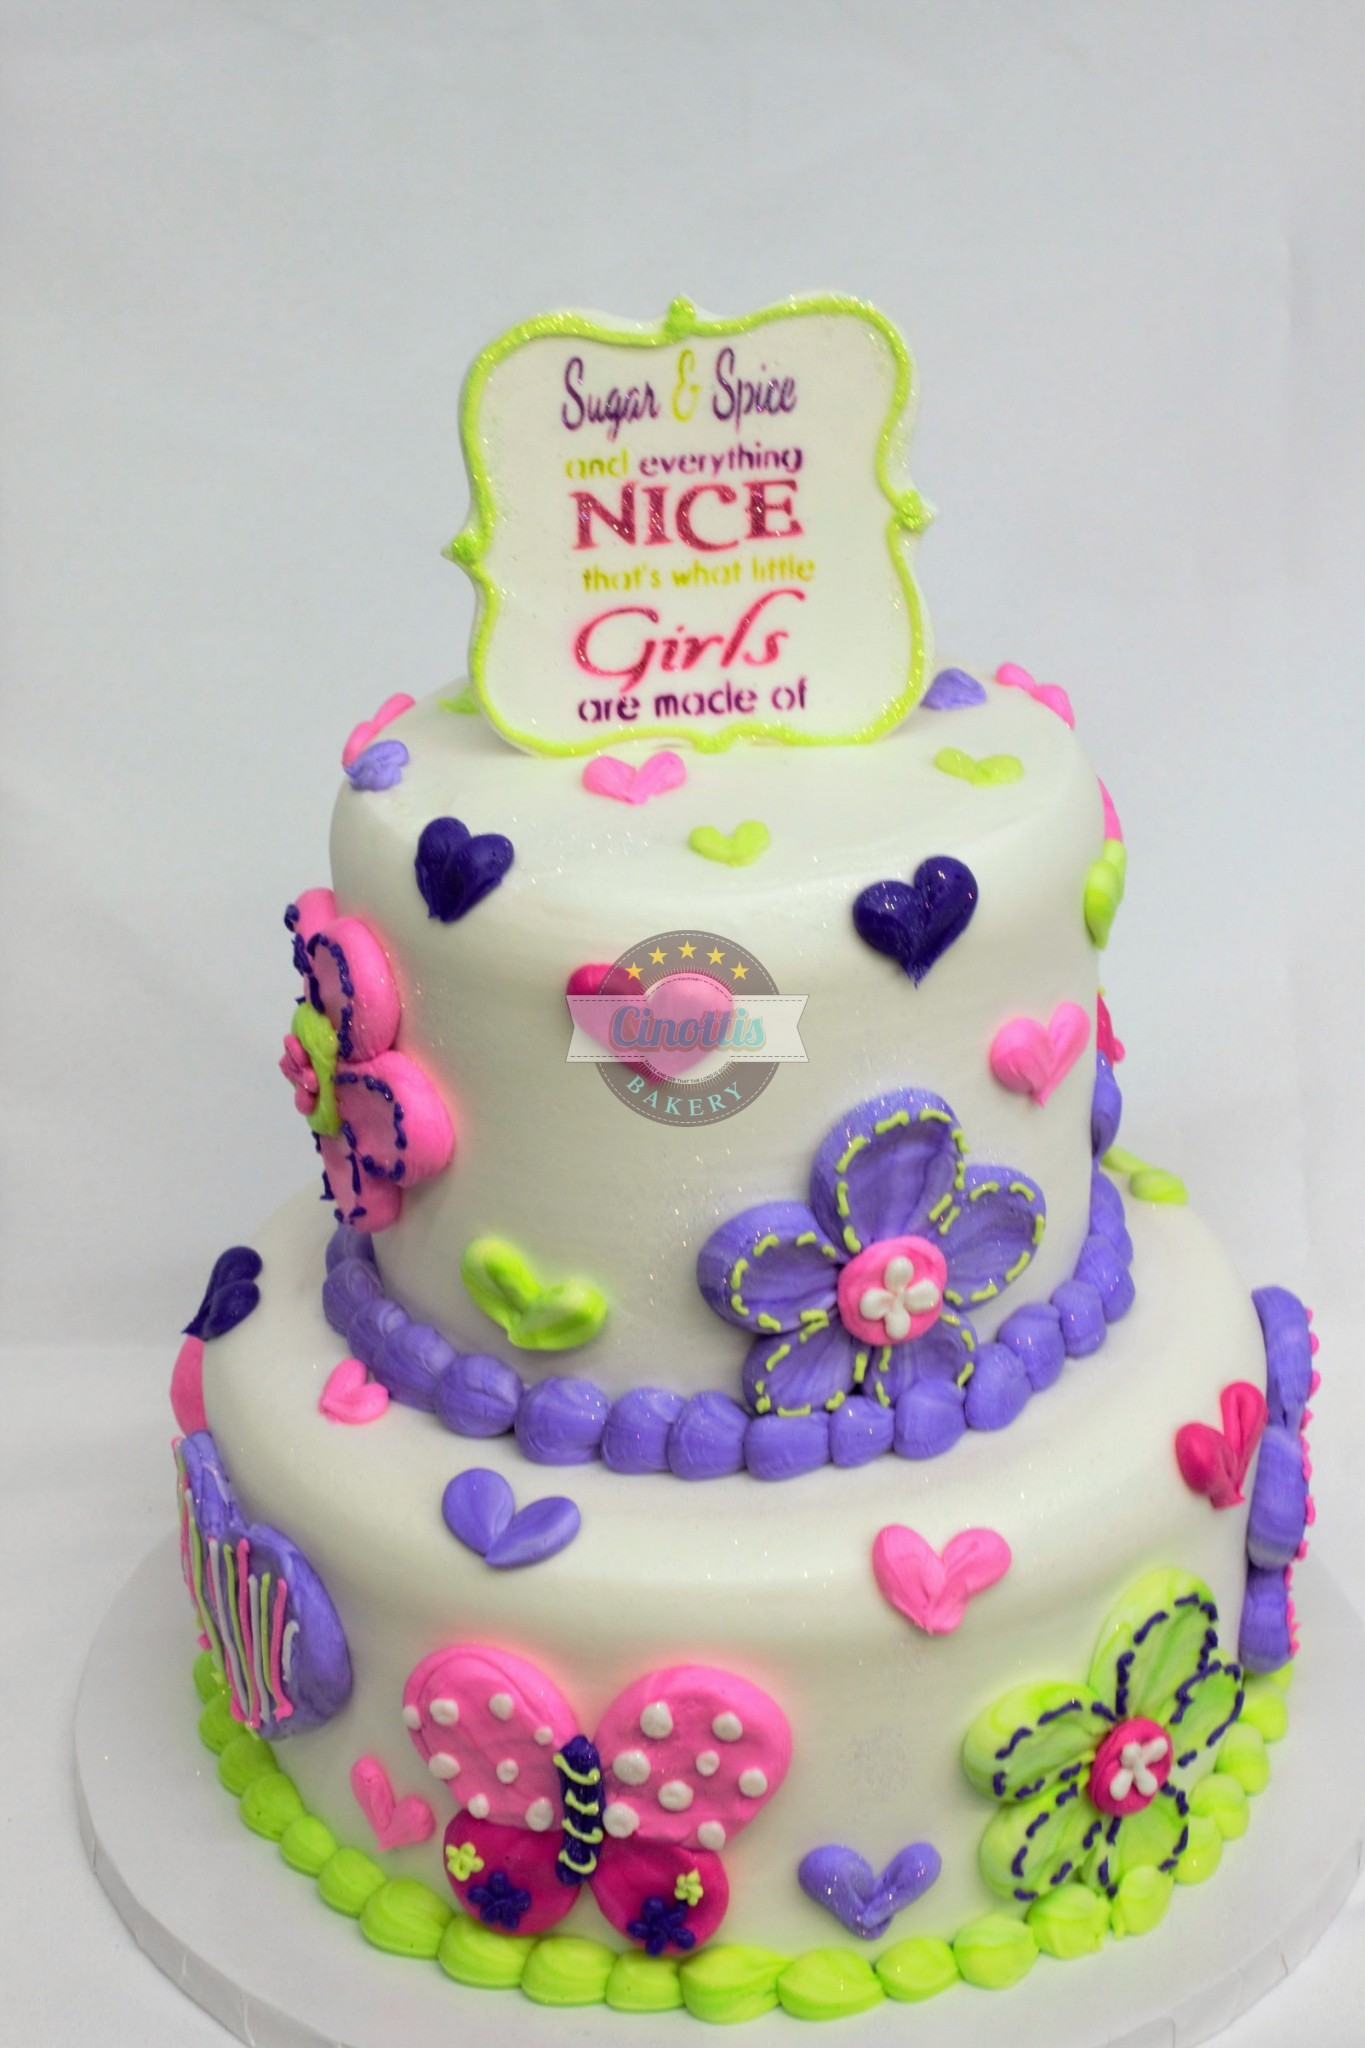 Sugar and spice cake a celebration cake from cinottis bakery sugar and spice birthday girl butterflies flowers sugar and izmirmasajfo